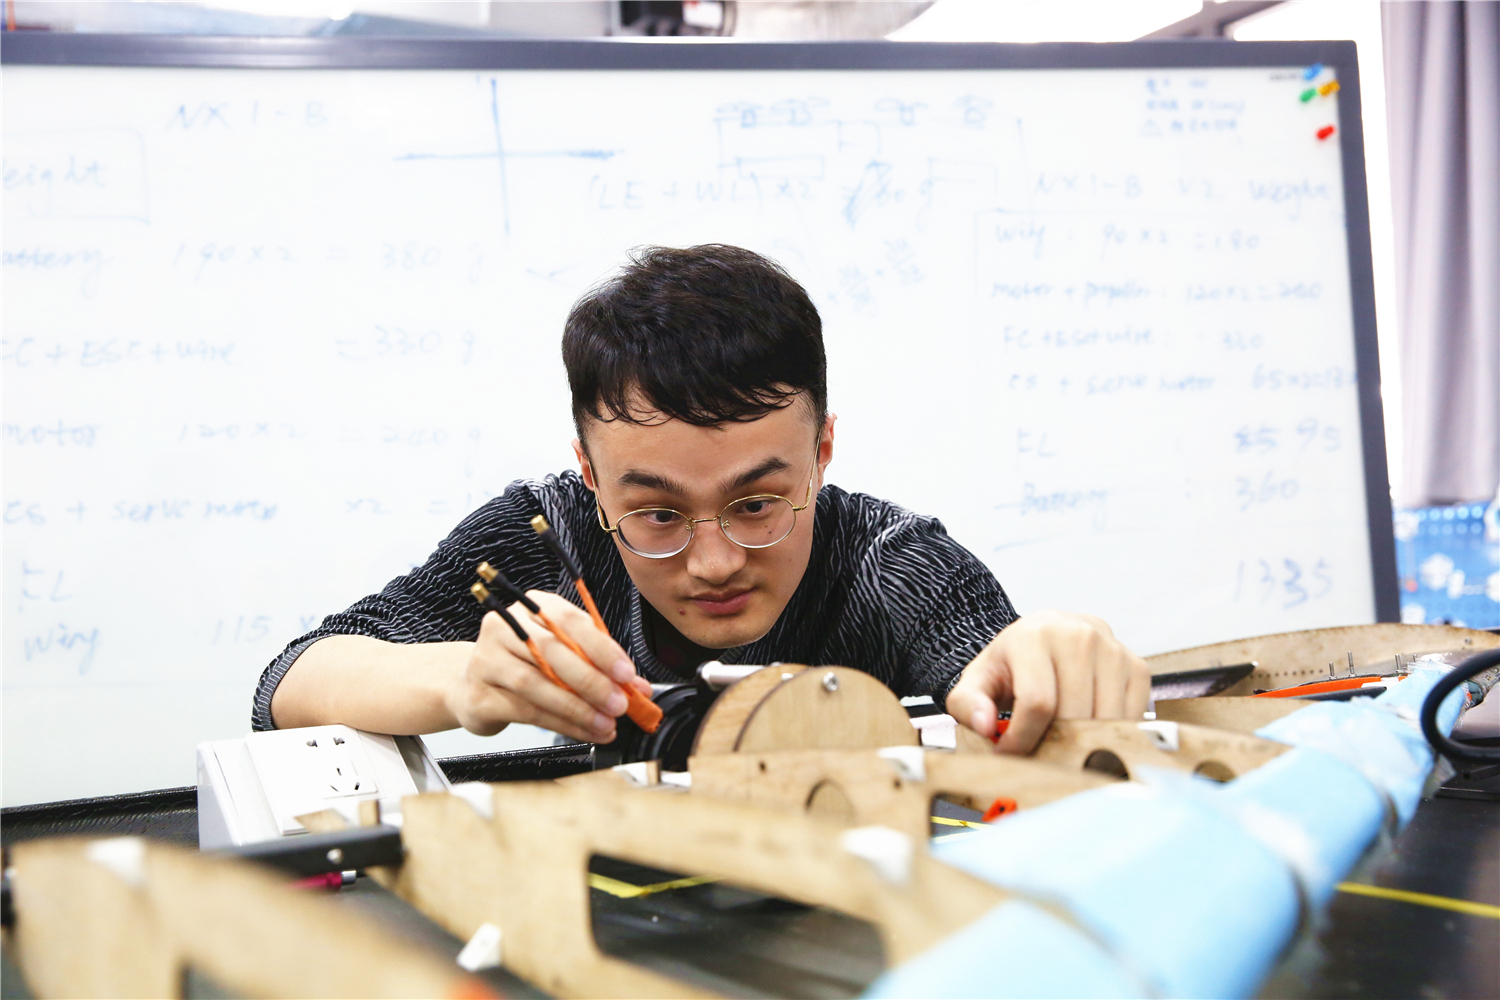 Superb Xu Dehao: Dreams of Designing Aircraft, Persists in Pursuing the Terror of Turbulence